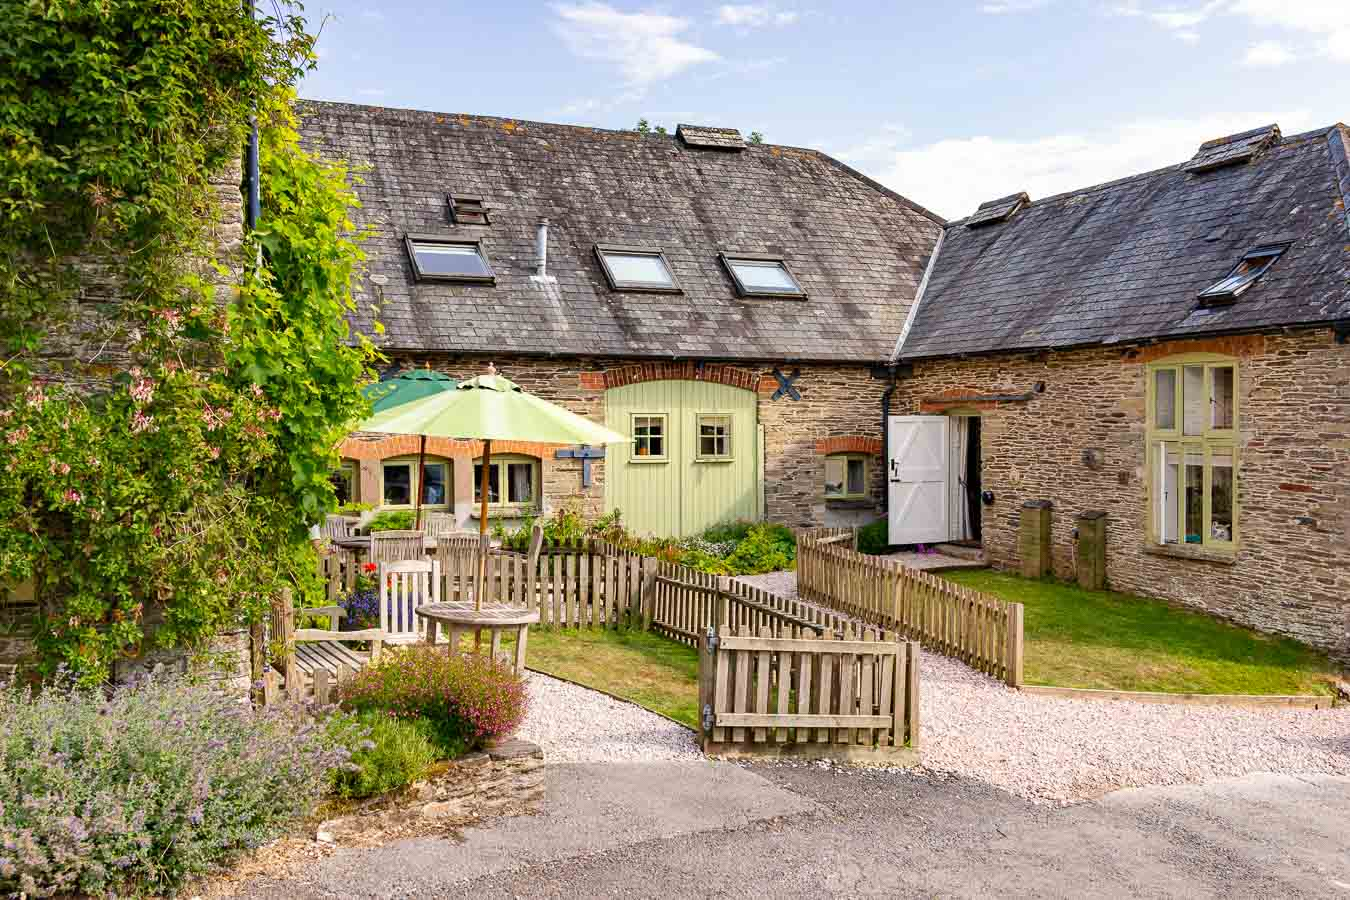 The beautiful court yard at Flear Farm holiday cottages where 1843 looks out.